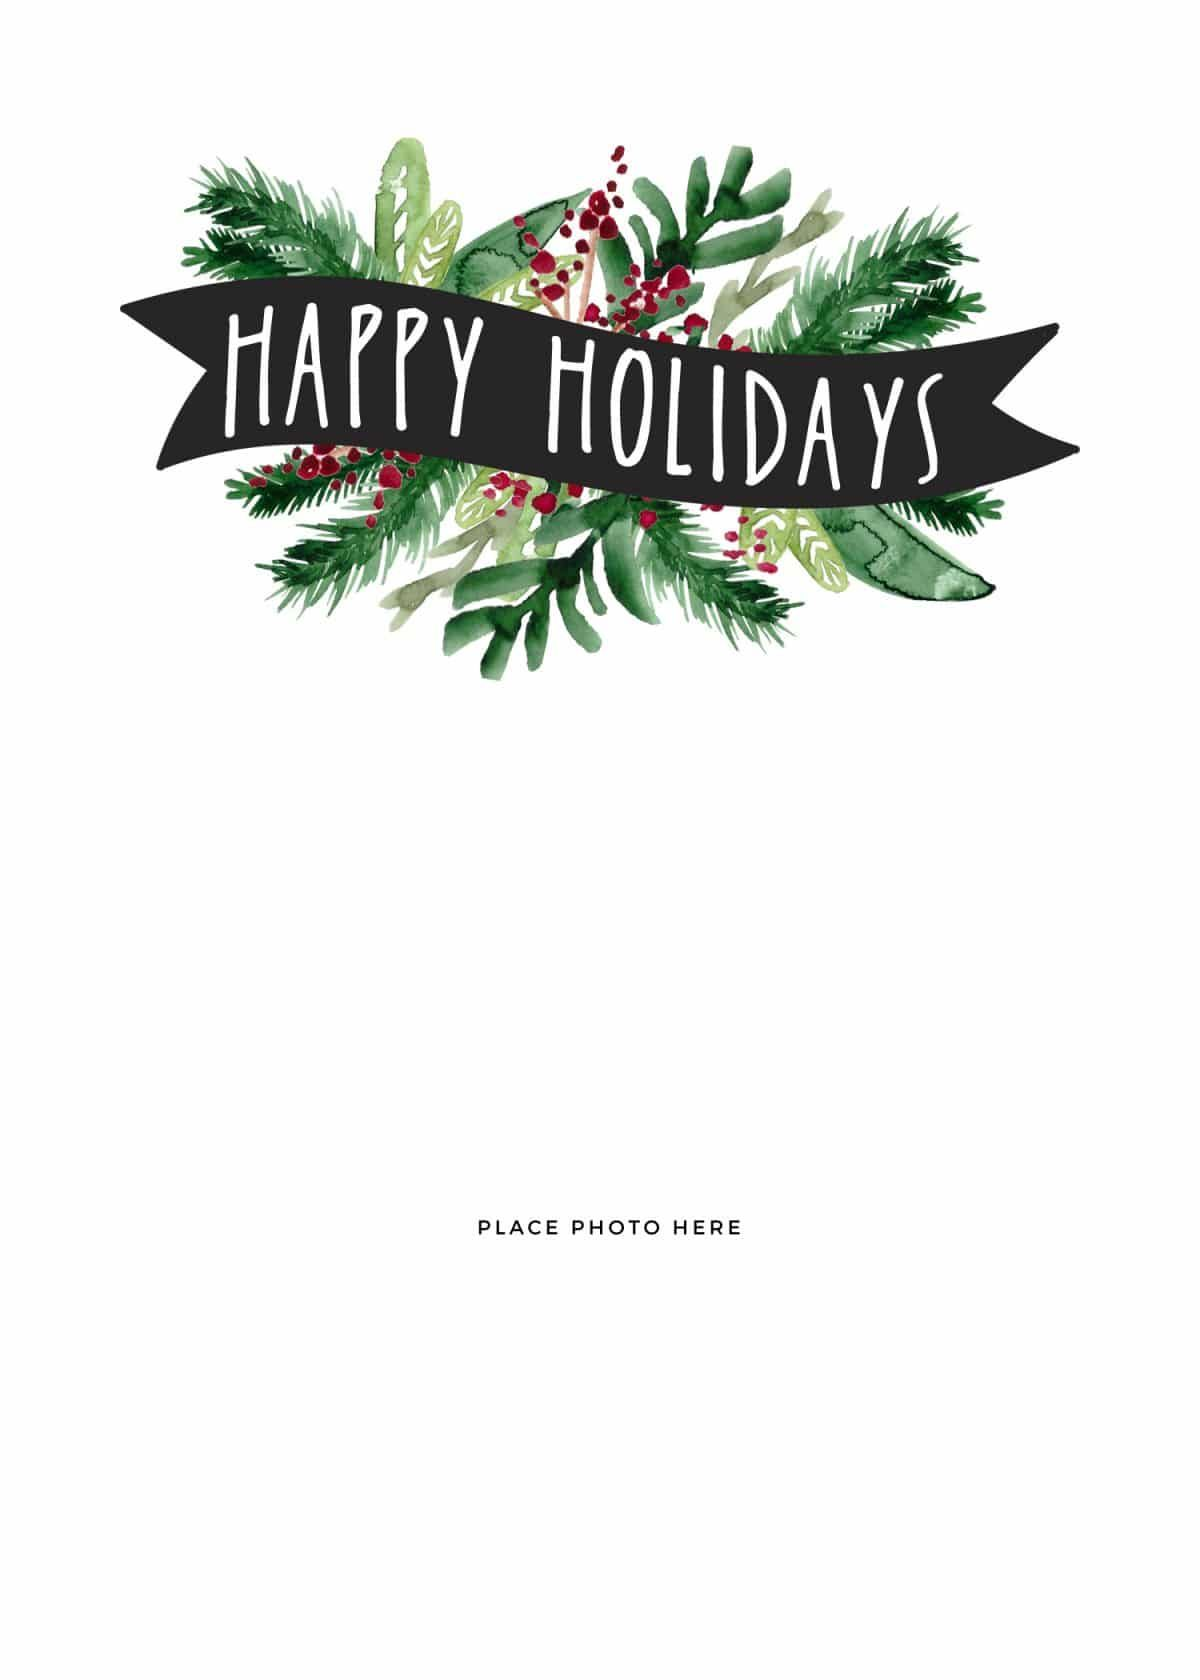 Make Your Own Photo Christmas Cards For Free Somewhat Throughout Diy Christmas Card Templates In 2020 Christmas Photo Cards Christmas Card Template Diy Christmas Cards